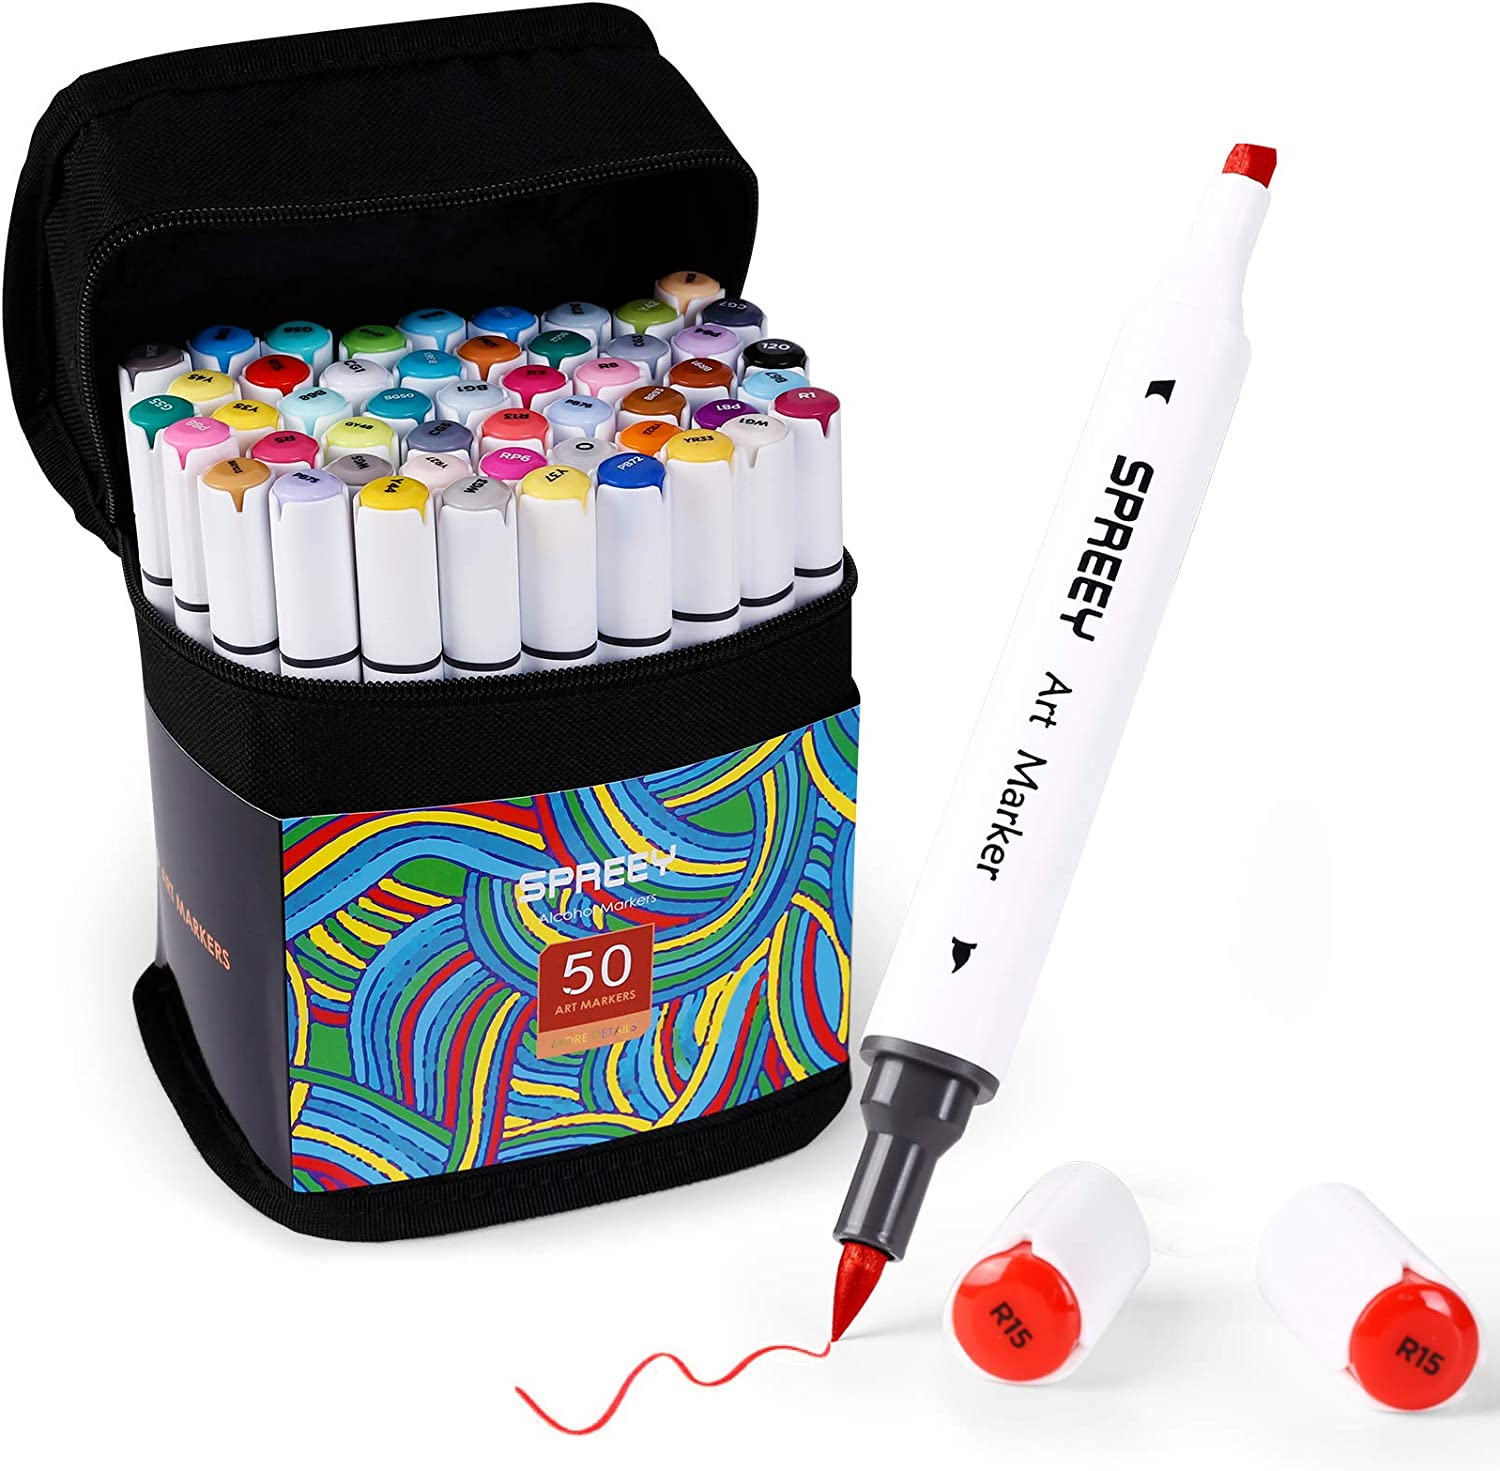 SPREEY 50 Colors Alcohol Brush Markers, Dual Tips(Brush & Chisel + 1 Colorless Alcohol Marker Blender), Art Alcohol Markers Set, for Kids Drawing, Coloring, Adult Illustration, Artist Sketching